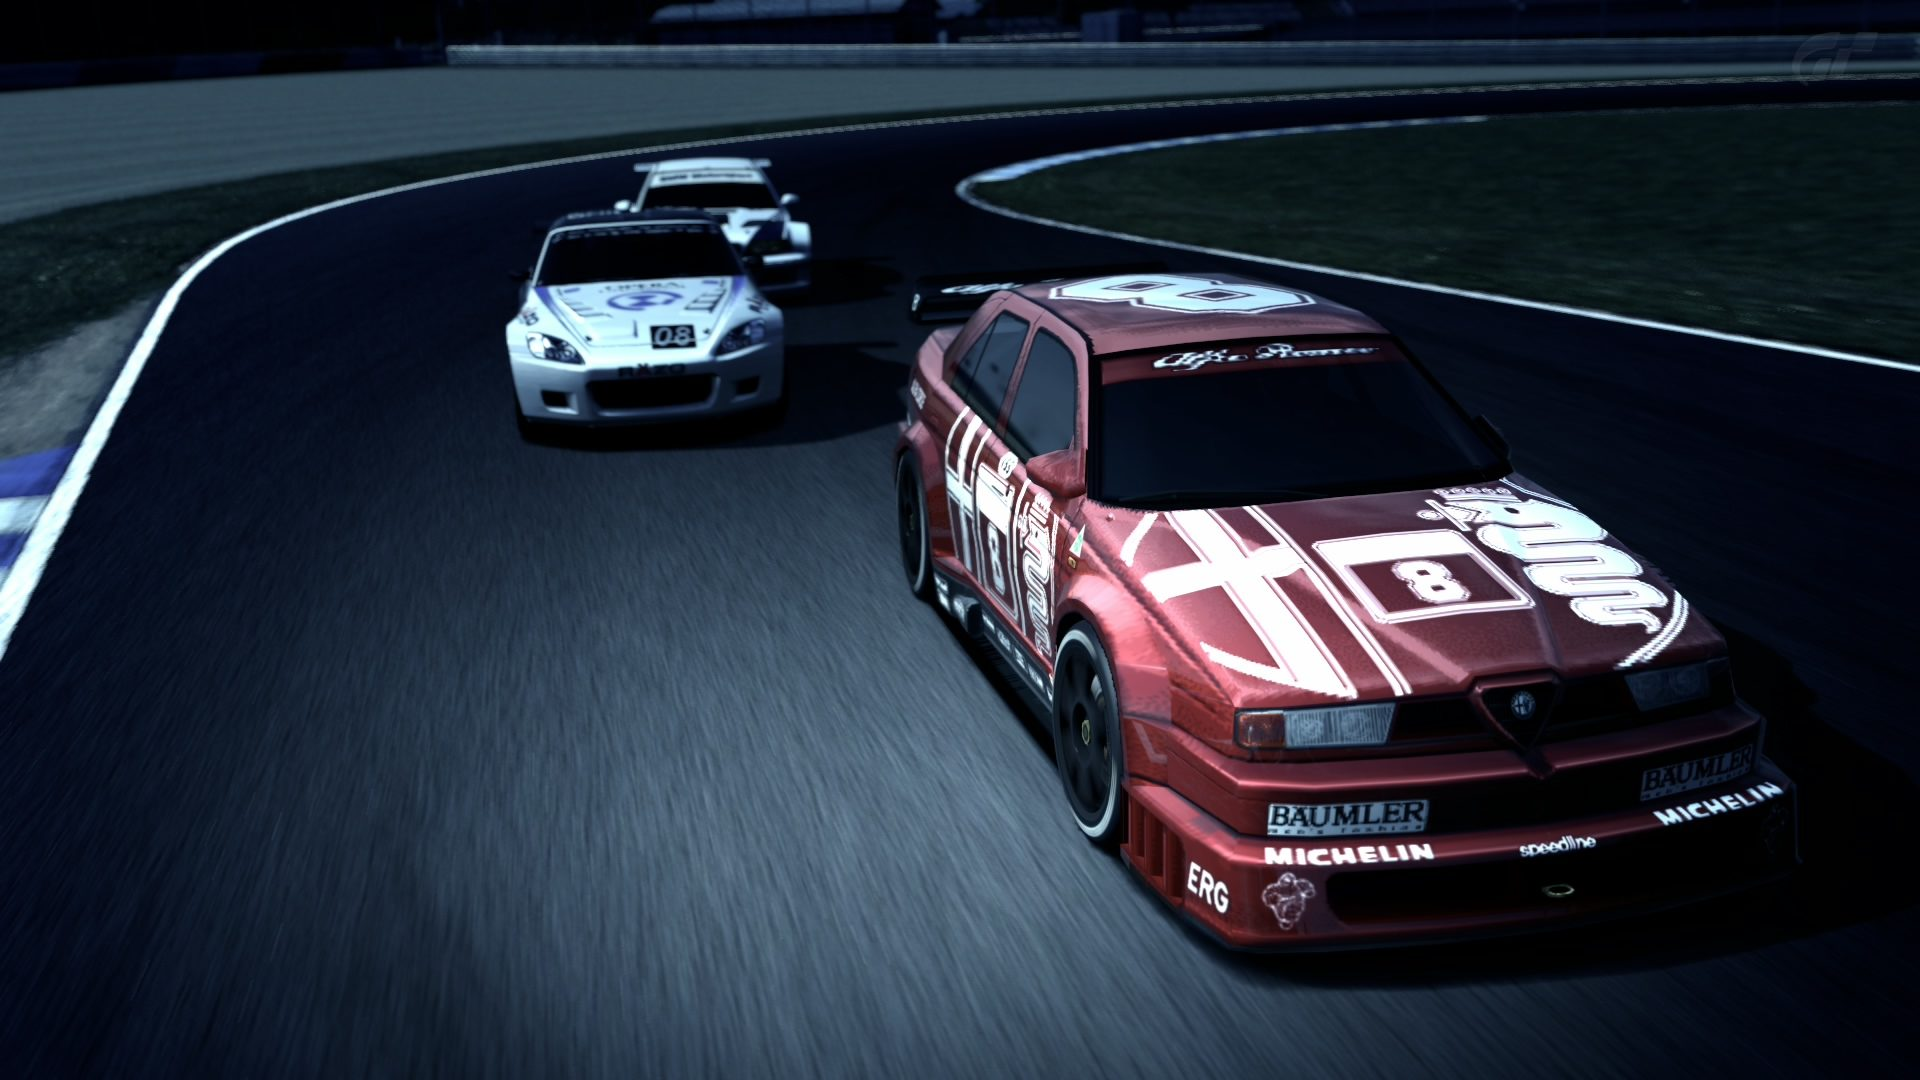 155Twin Ring Motegi Road Course.jpg